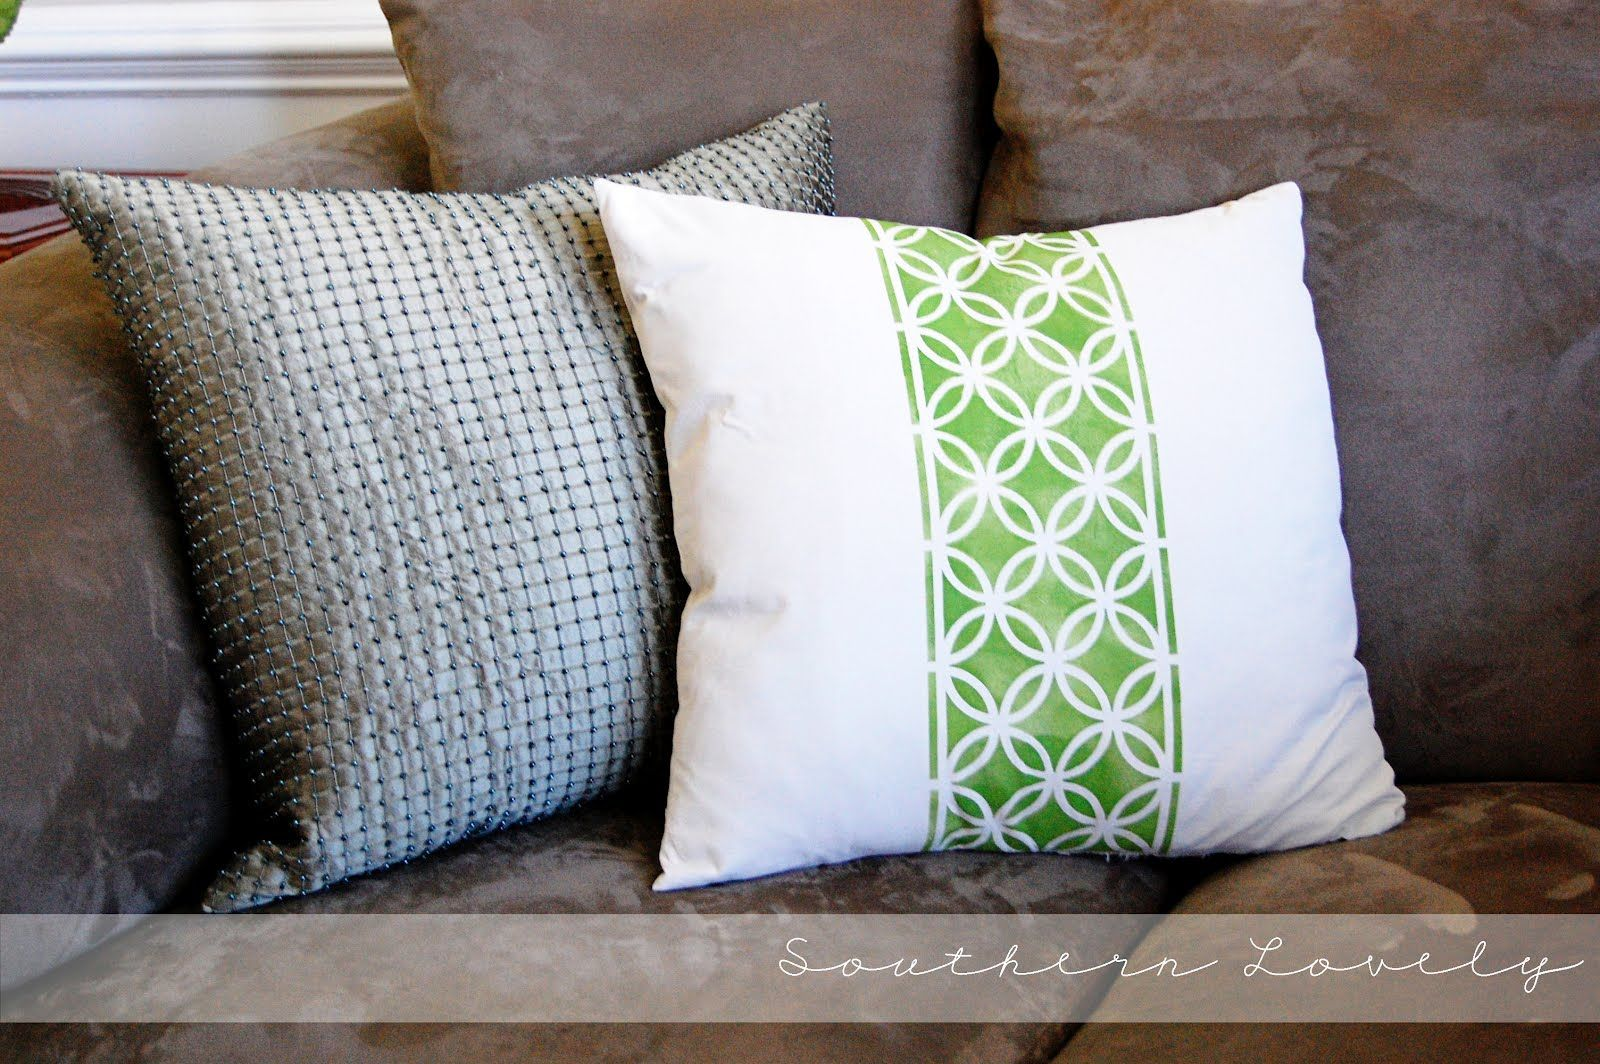 Southern lovely painted pillow home ideas pillows pinterest